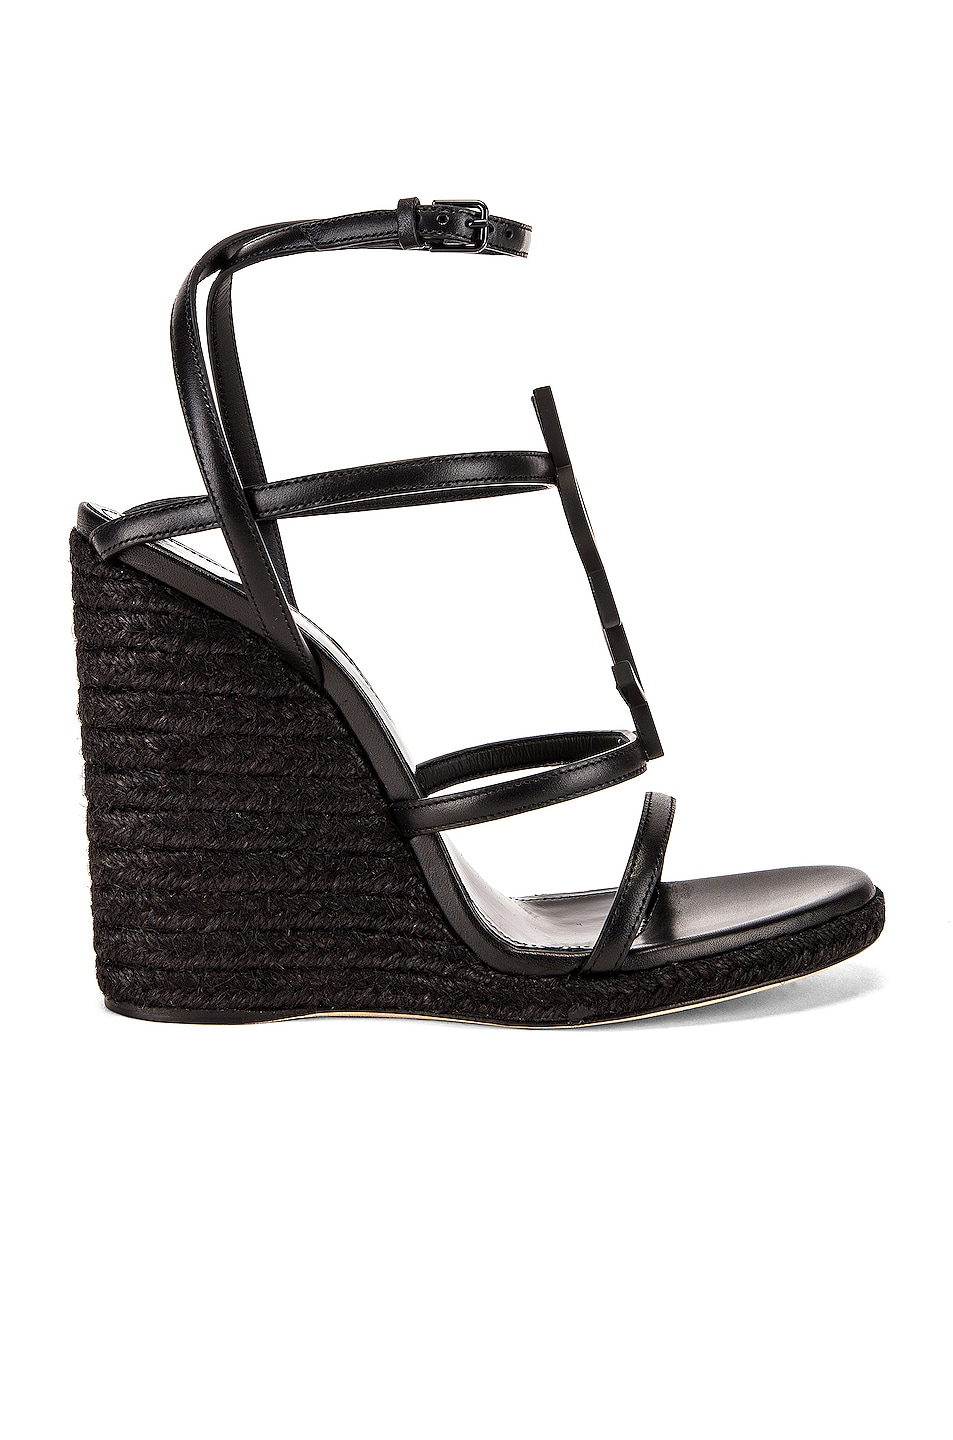 Image 2 of Saint Laurent Cassandra Wedges in Black